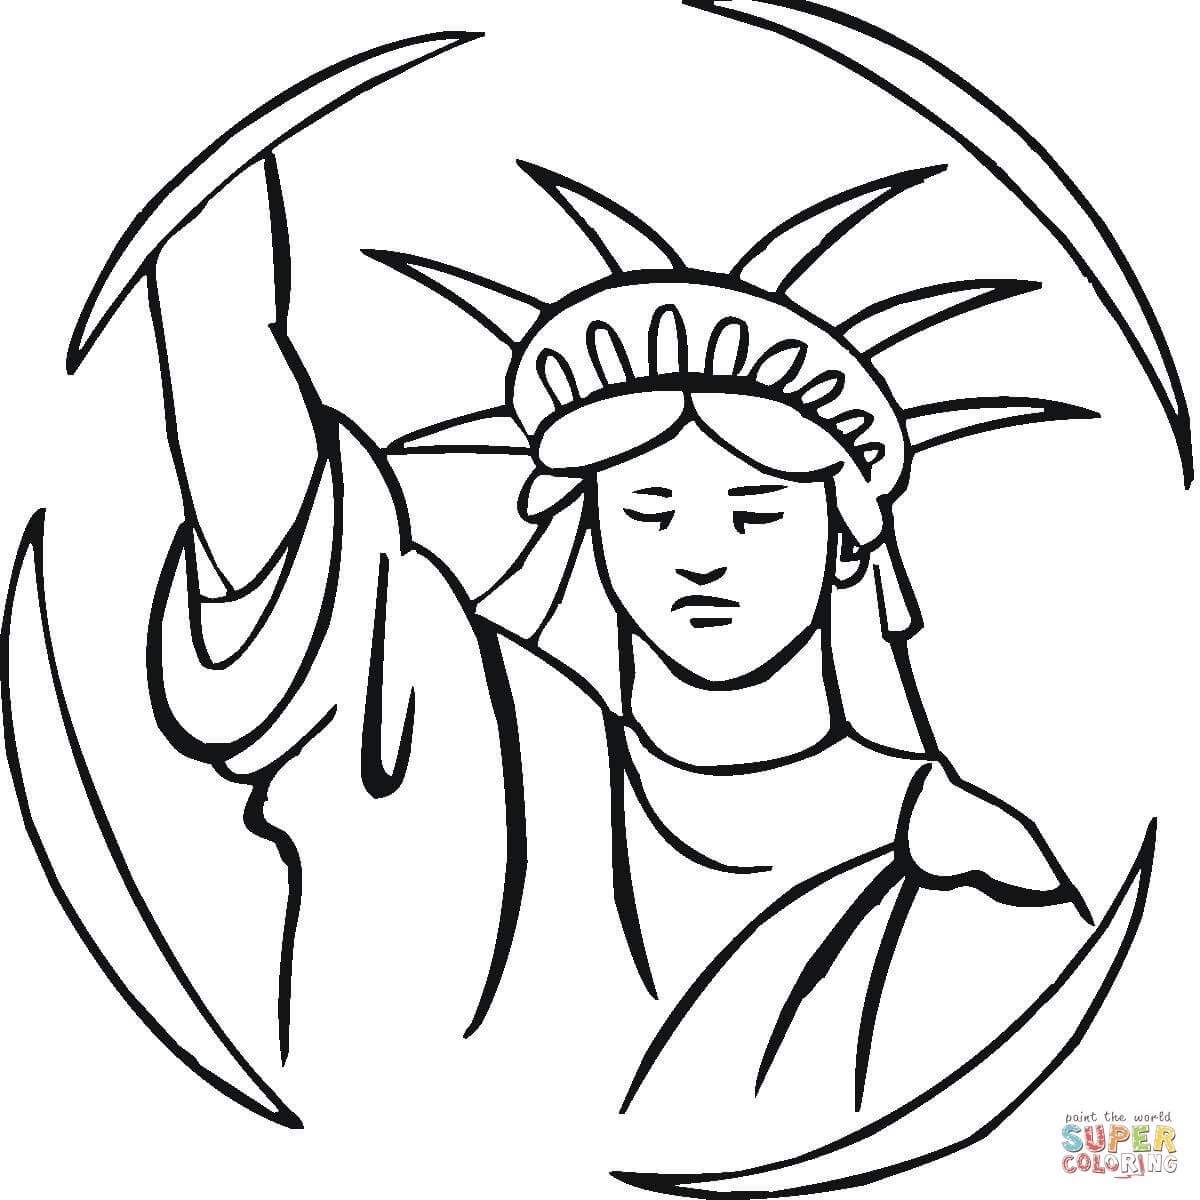 Drawn statue of liberty coloring page Coloring Coloring Statue Of Liberty